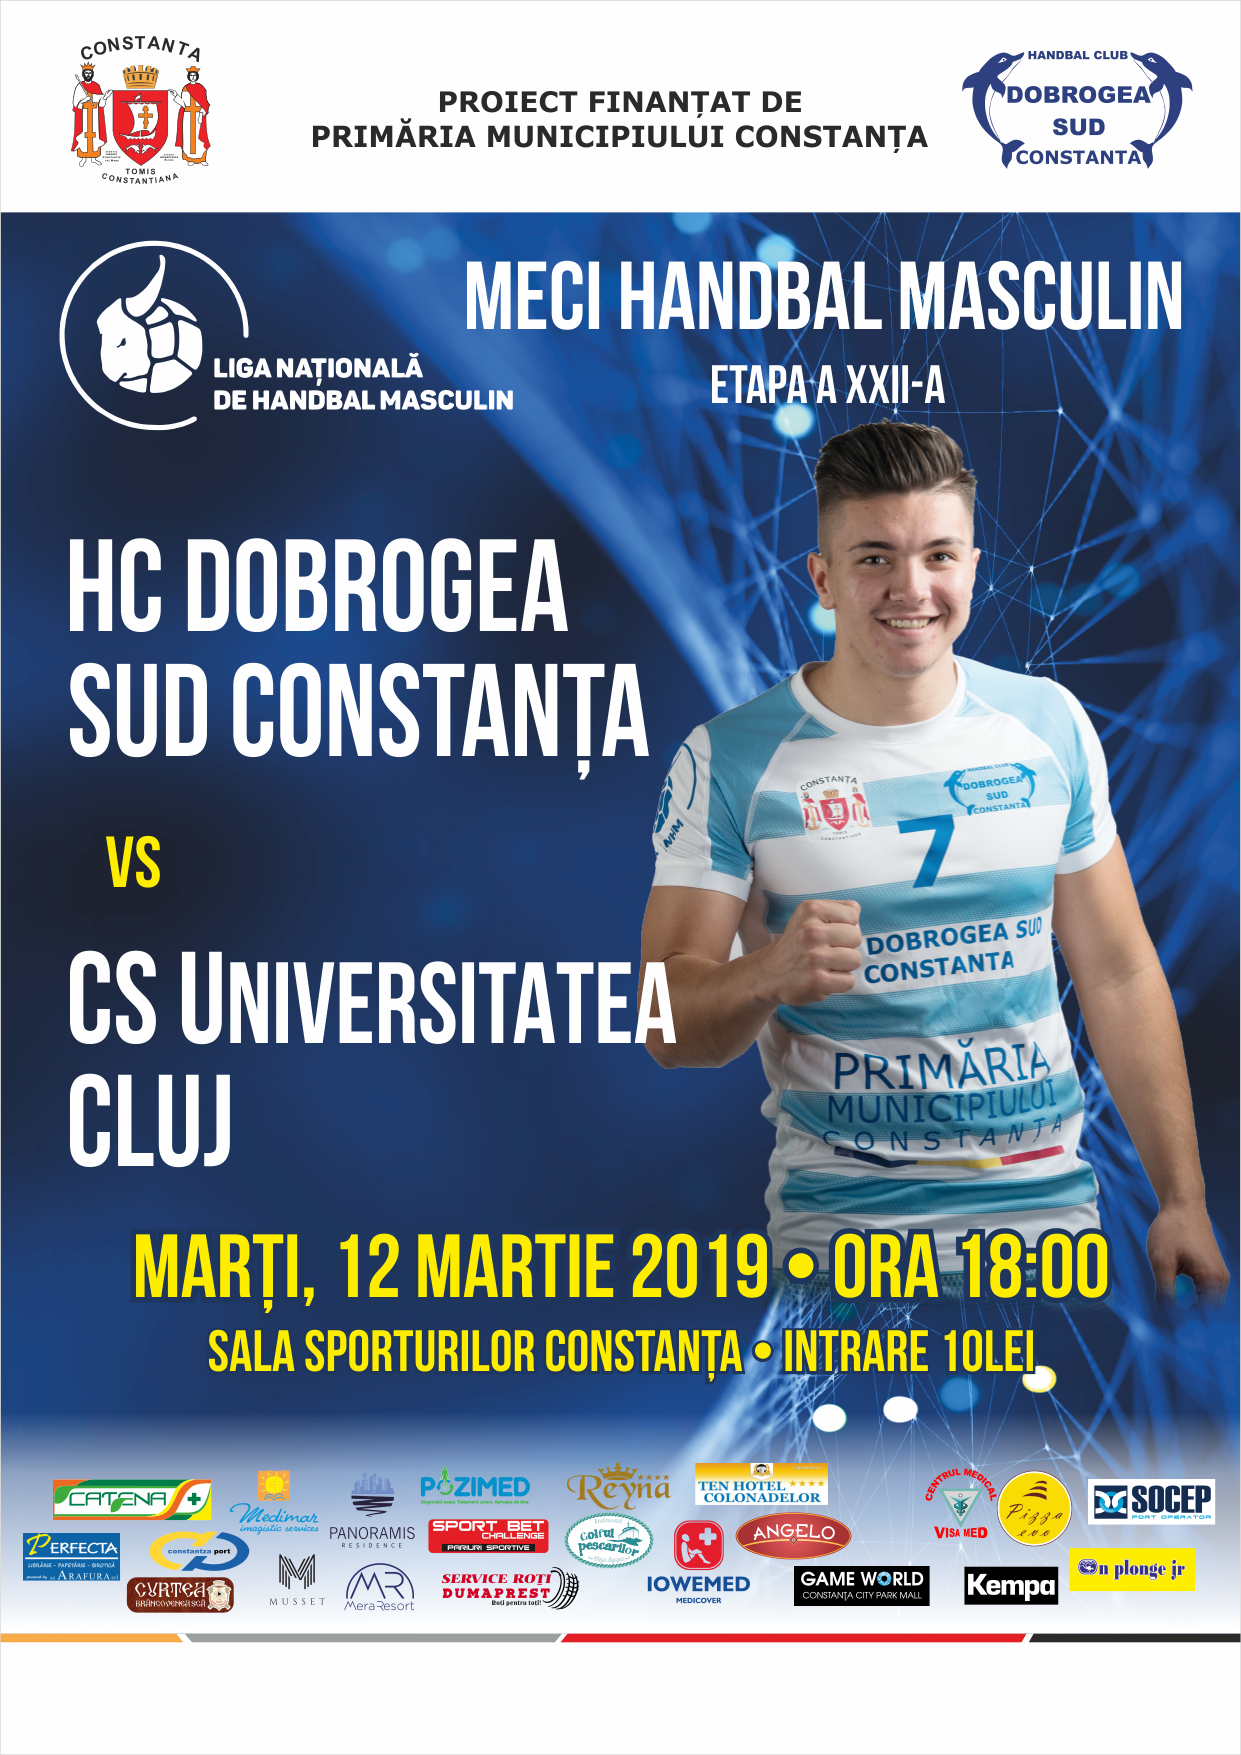 afis HC Dobrogea Sud Constanta vs. CS Universitatea Cluj 12.03.2019.png afis final